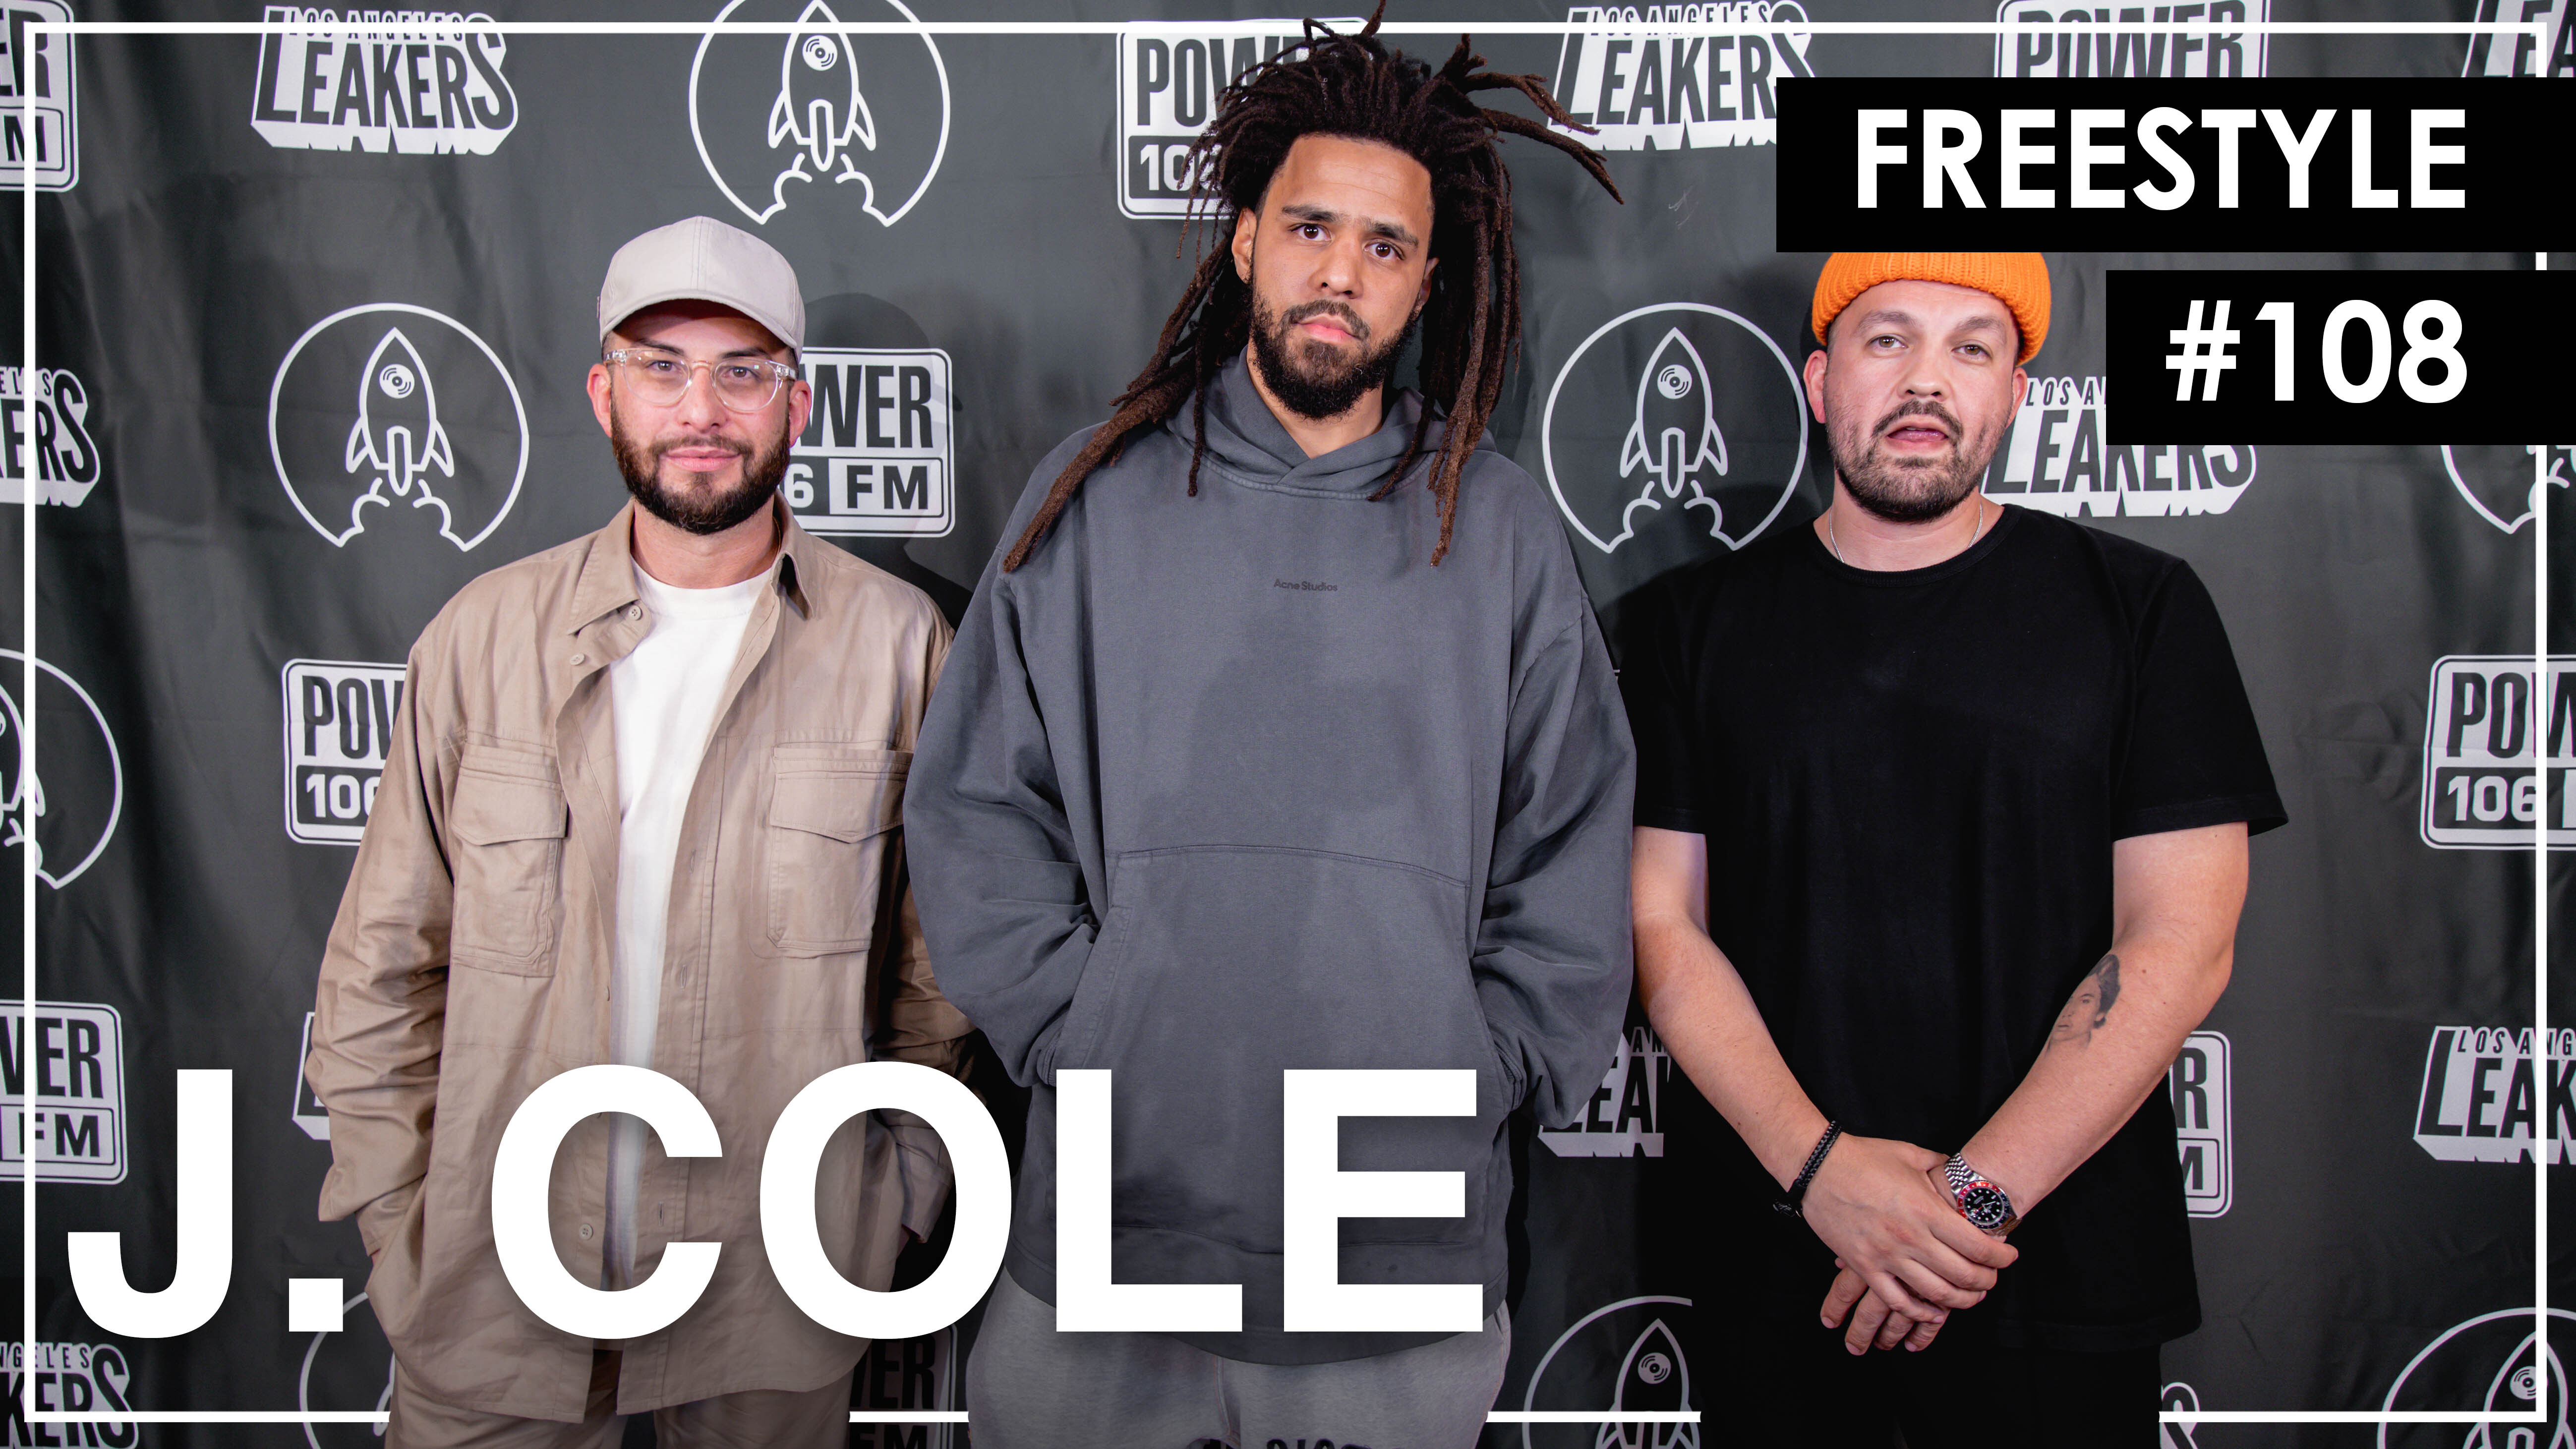 """J. Cole Freestyles Over """"93 Til Infinity"""" & Mike Jones' """"Still Tippin"""" – L.A. Leakers Freestyle #108"""